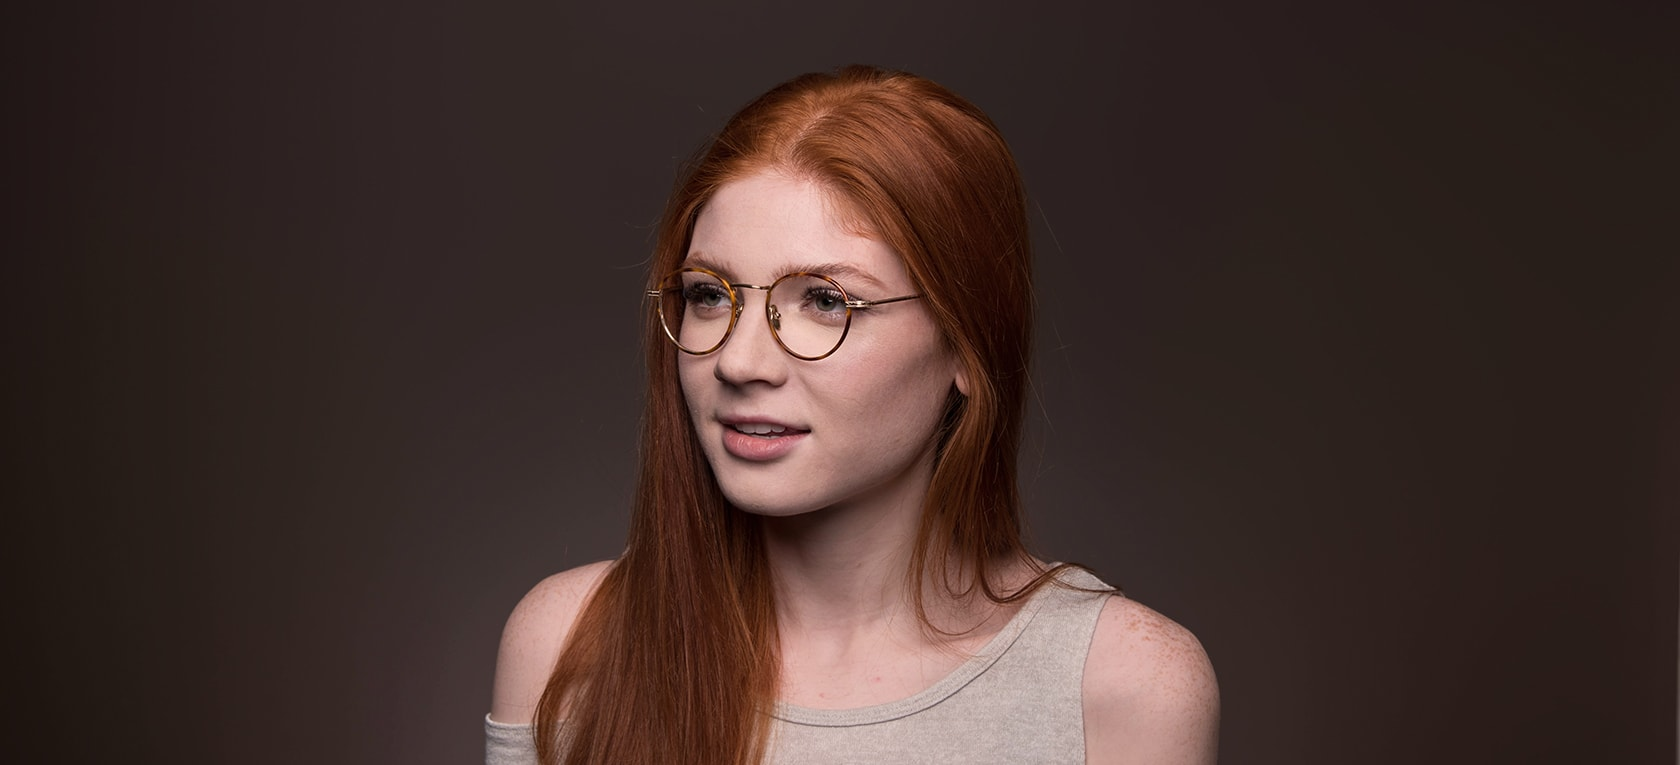 Image of model wearing Singleton frames